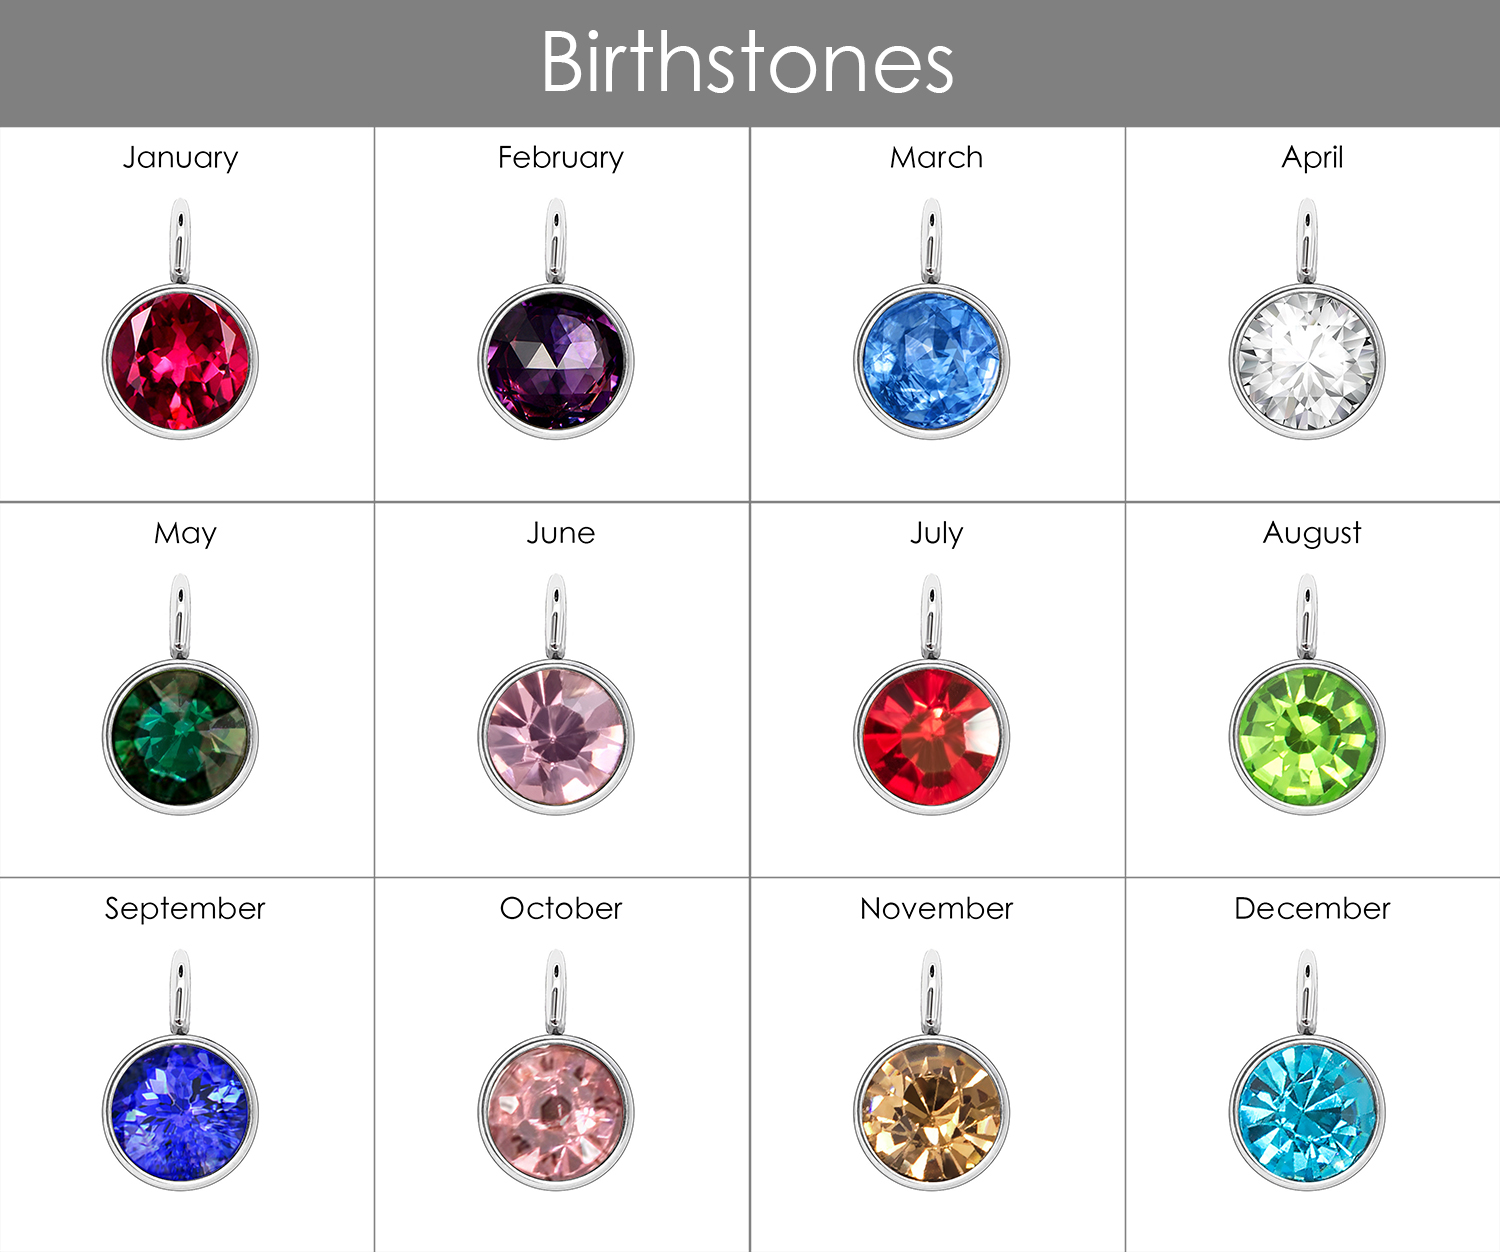 Brutus Bulldog Self Defense Keychain Defense Tools Personalized Birthstone Gifts for Women Her Girls : Veasoon